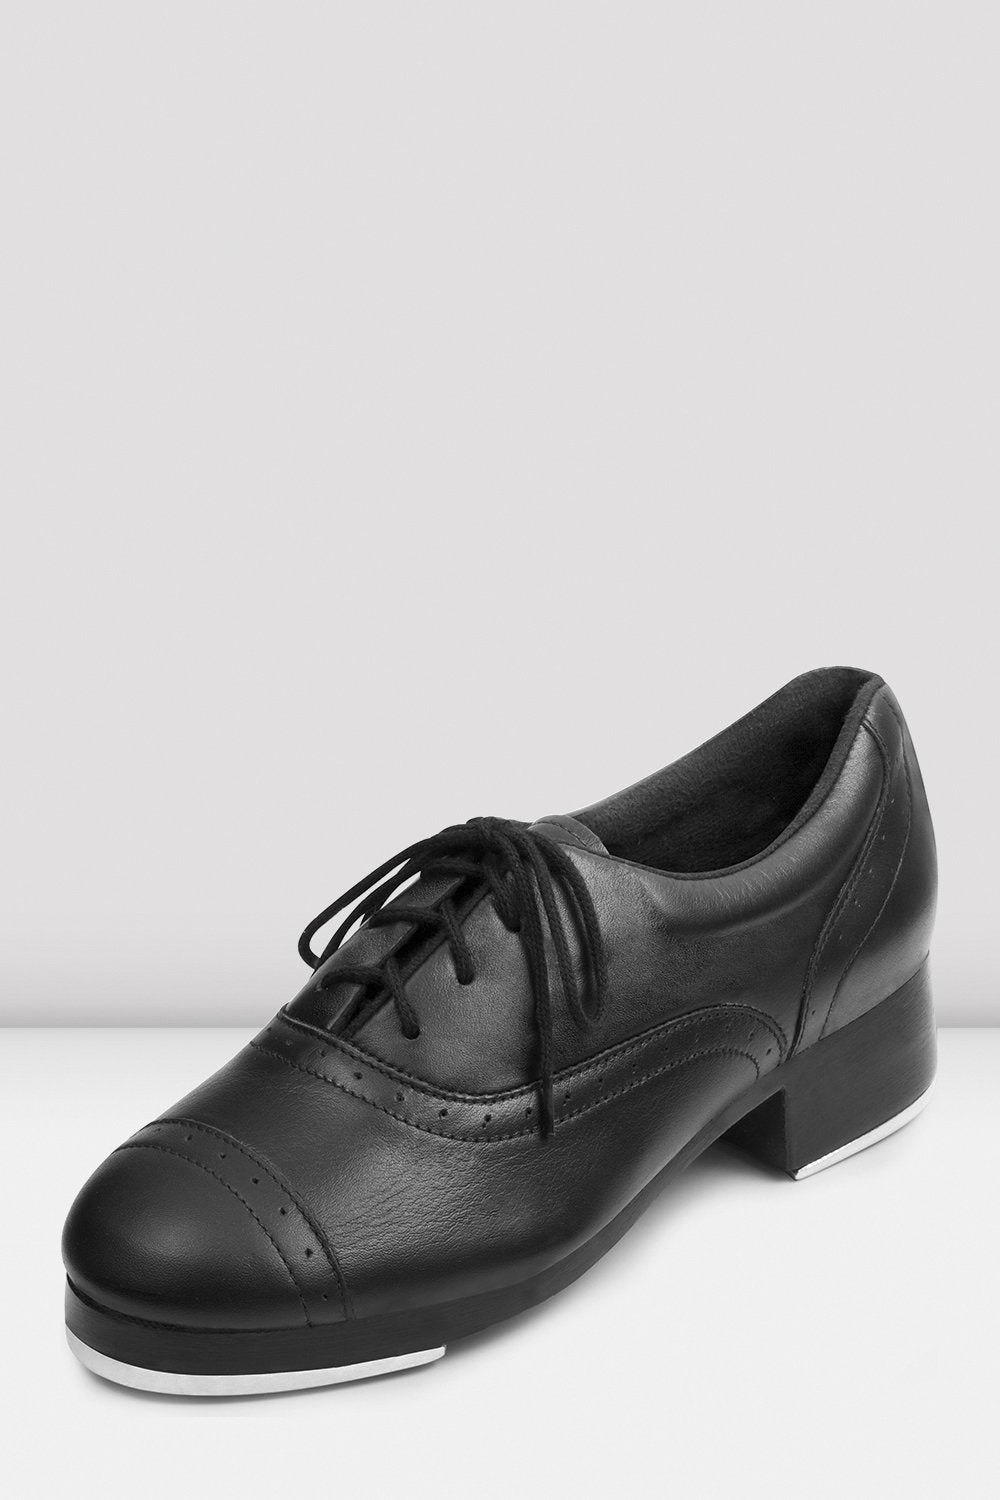 Black leather Bloch Ladies Jason Samuels Smith Tap Shoes single shoe side view focus on toe of shoe